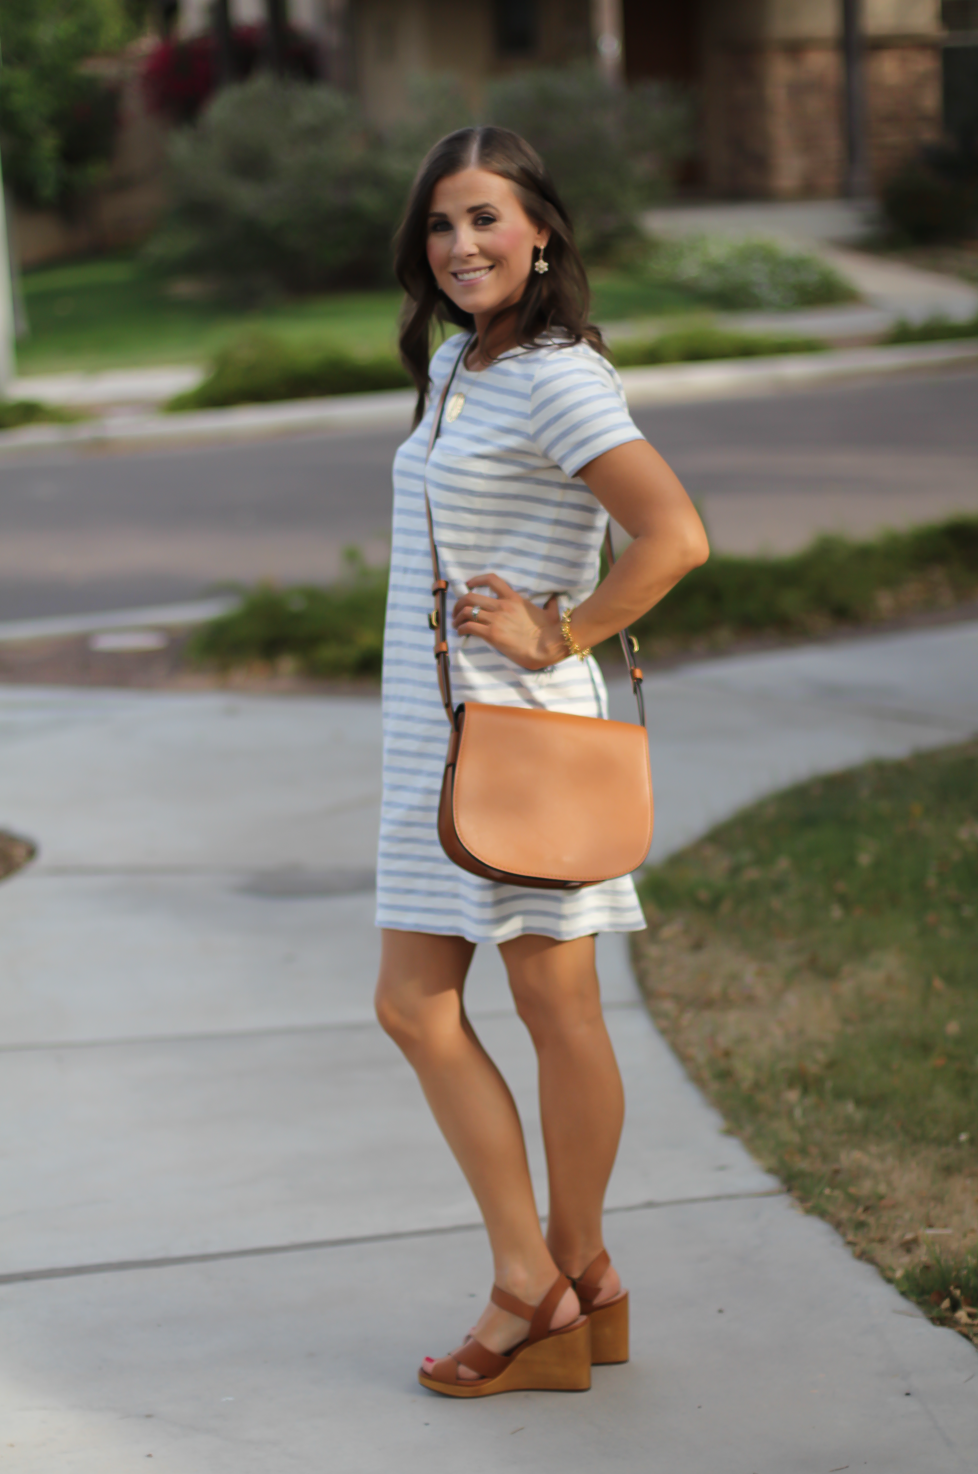 Grey Striped Button Back Short Sleeve Dress, Cognac Leather Wedge Sandals, Cognac Saddlebag, Madewell, Tory Burch 13